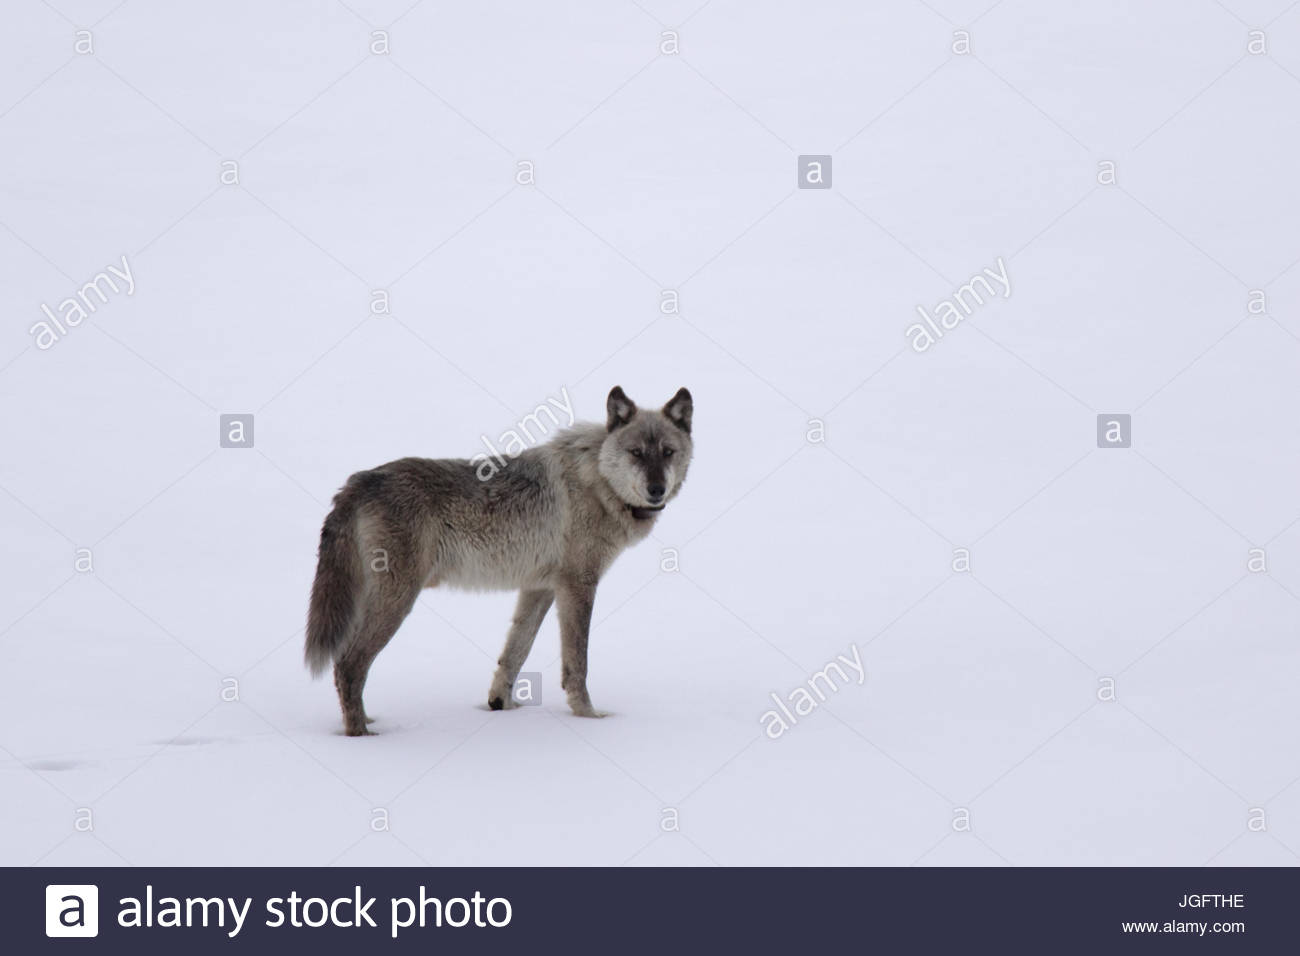 A male gray wolf, Canis lupus, wearing a tracking collar. - Stock Image